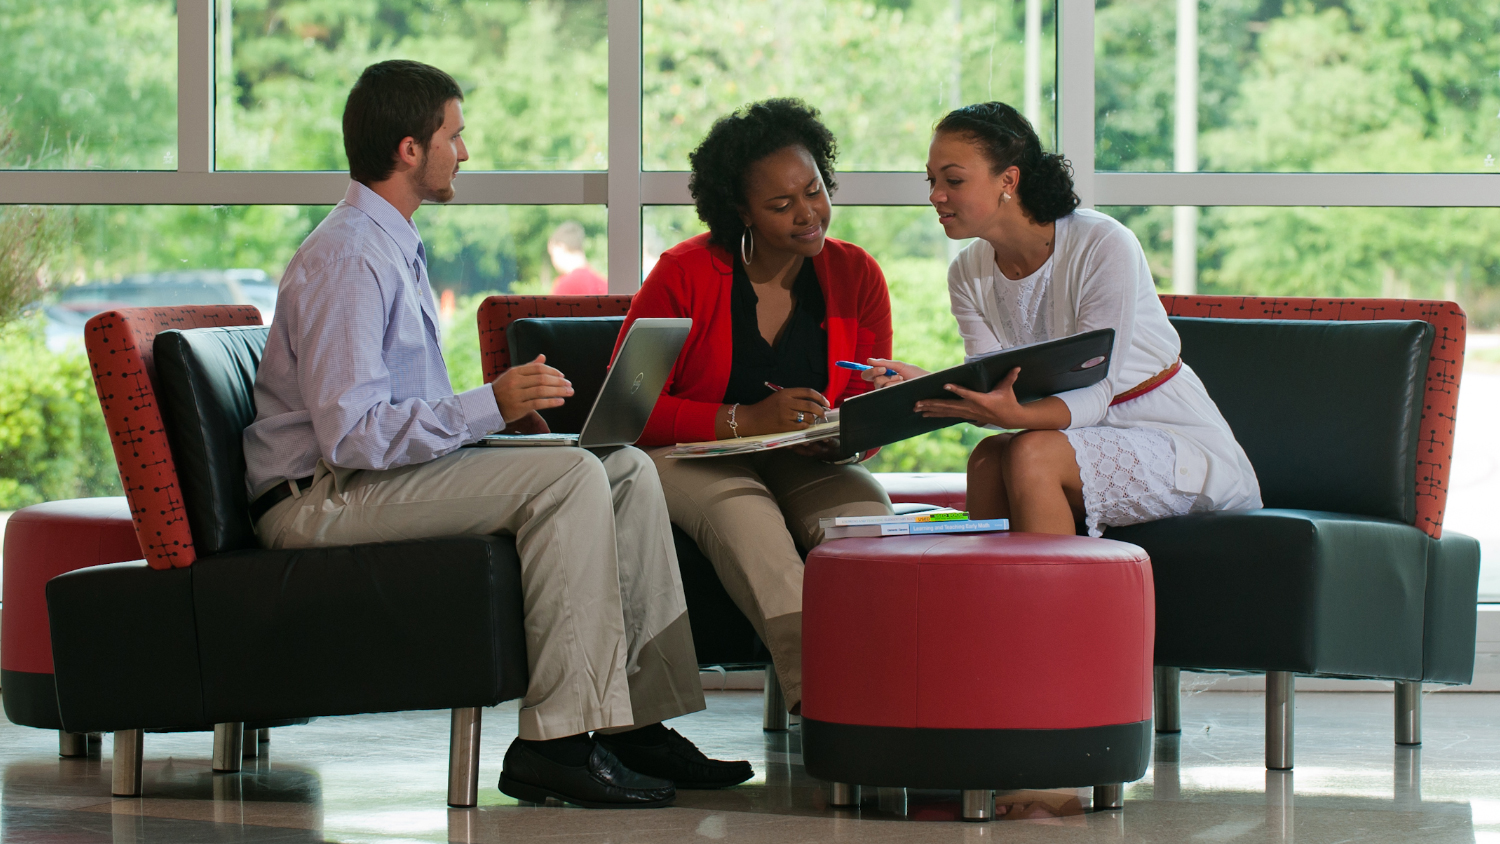 Three working professionals on laptops sit and collaborate on NC State's Centennial Campus.